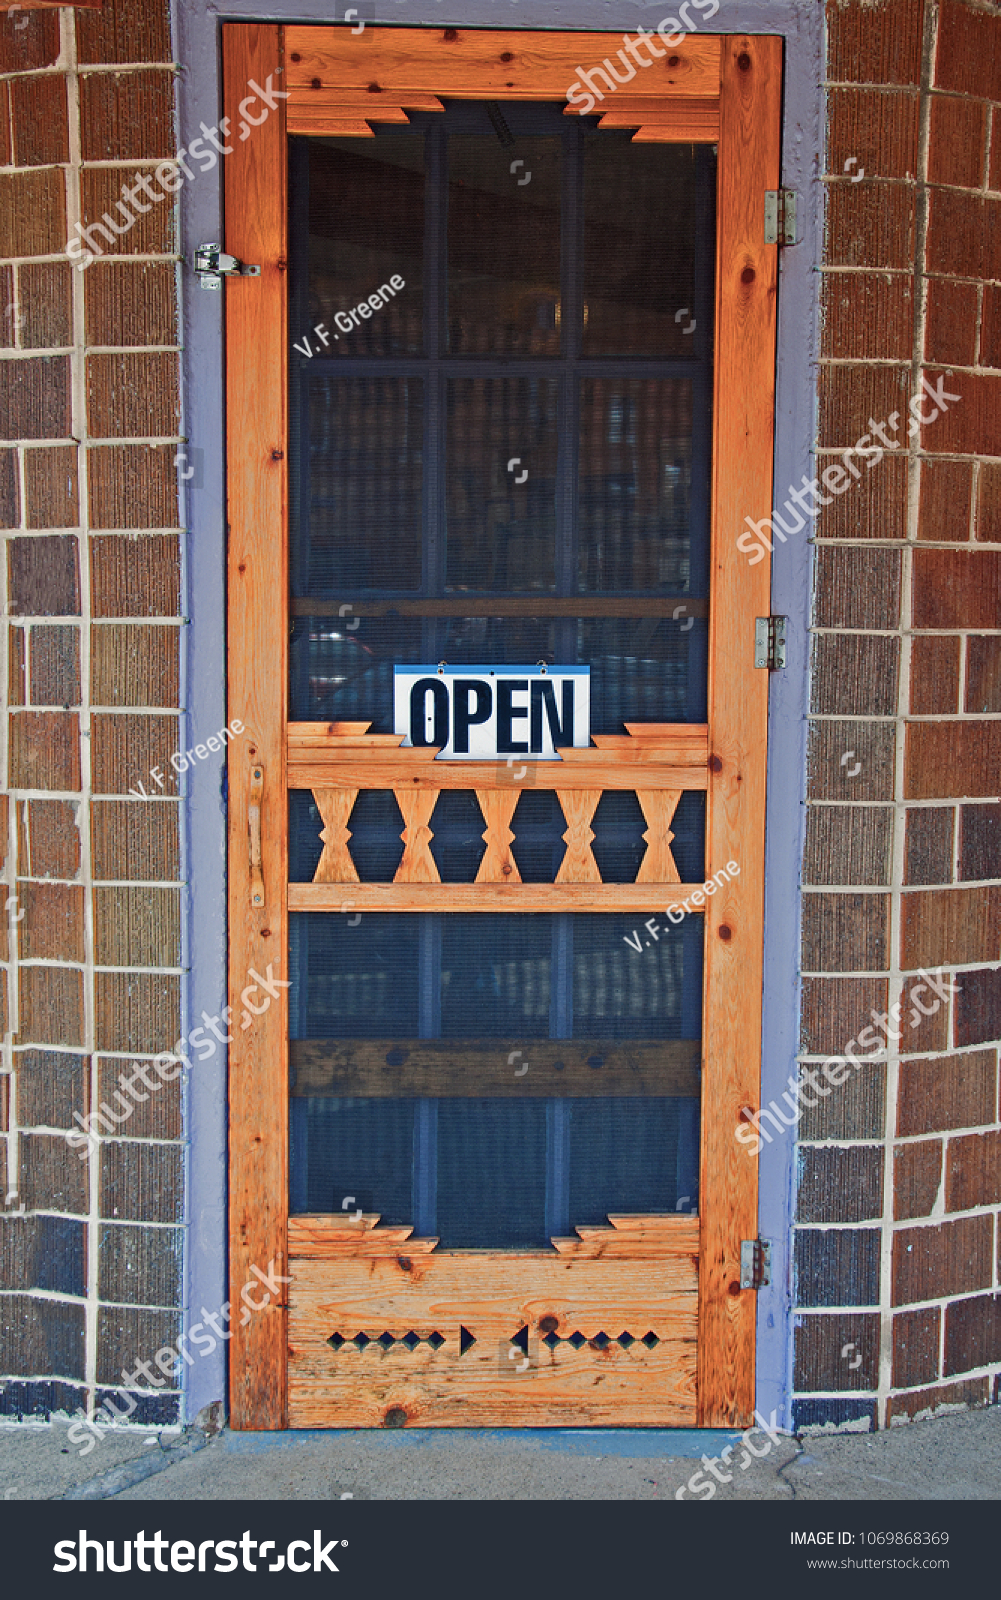 Open Sign On Old Fashioned Wood Stock Photo Edit Now 1069868369